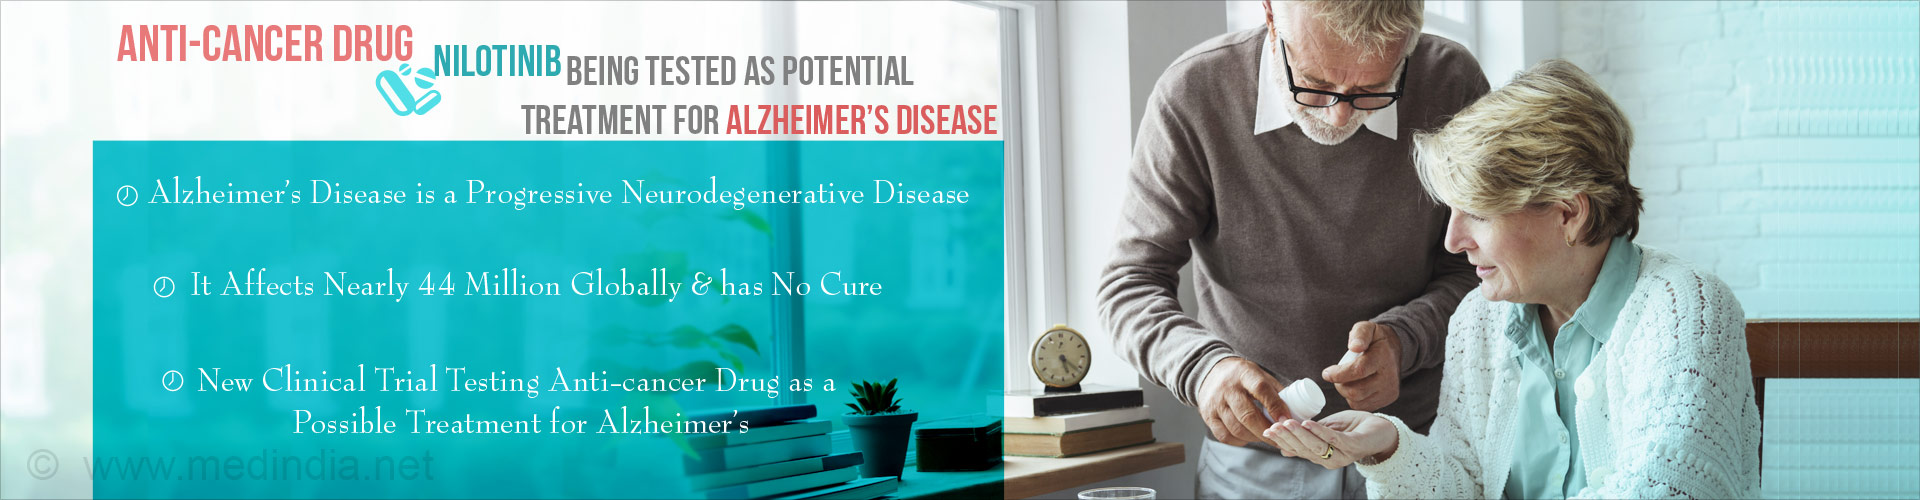 Cancer Drug Nilotinib Being Tested As Treatment For Alzheimer's In New Clinical Trial